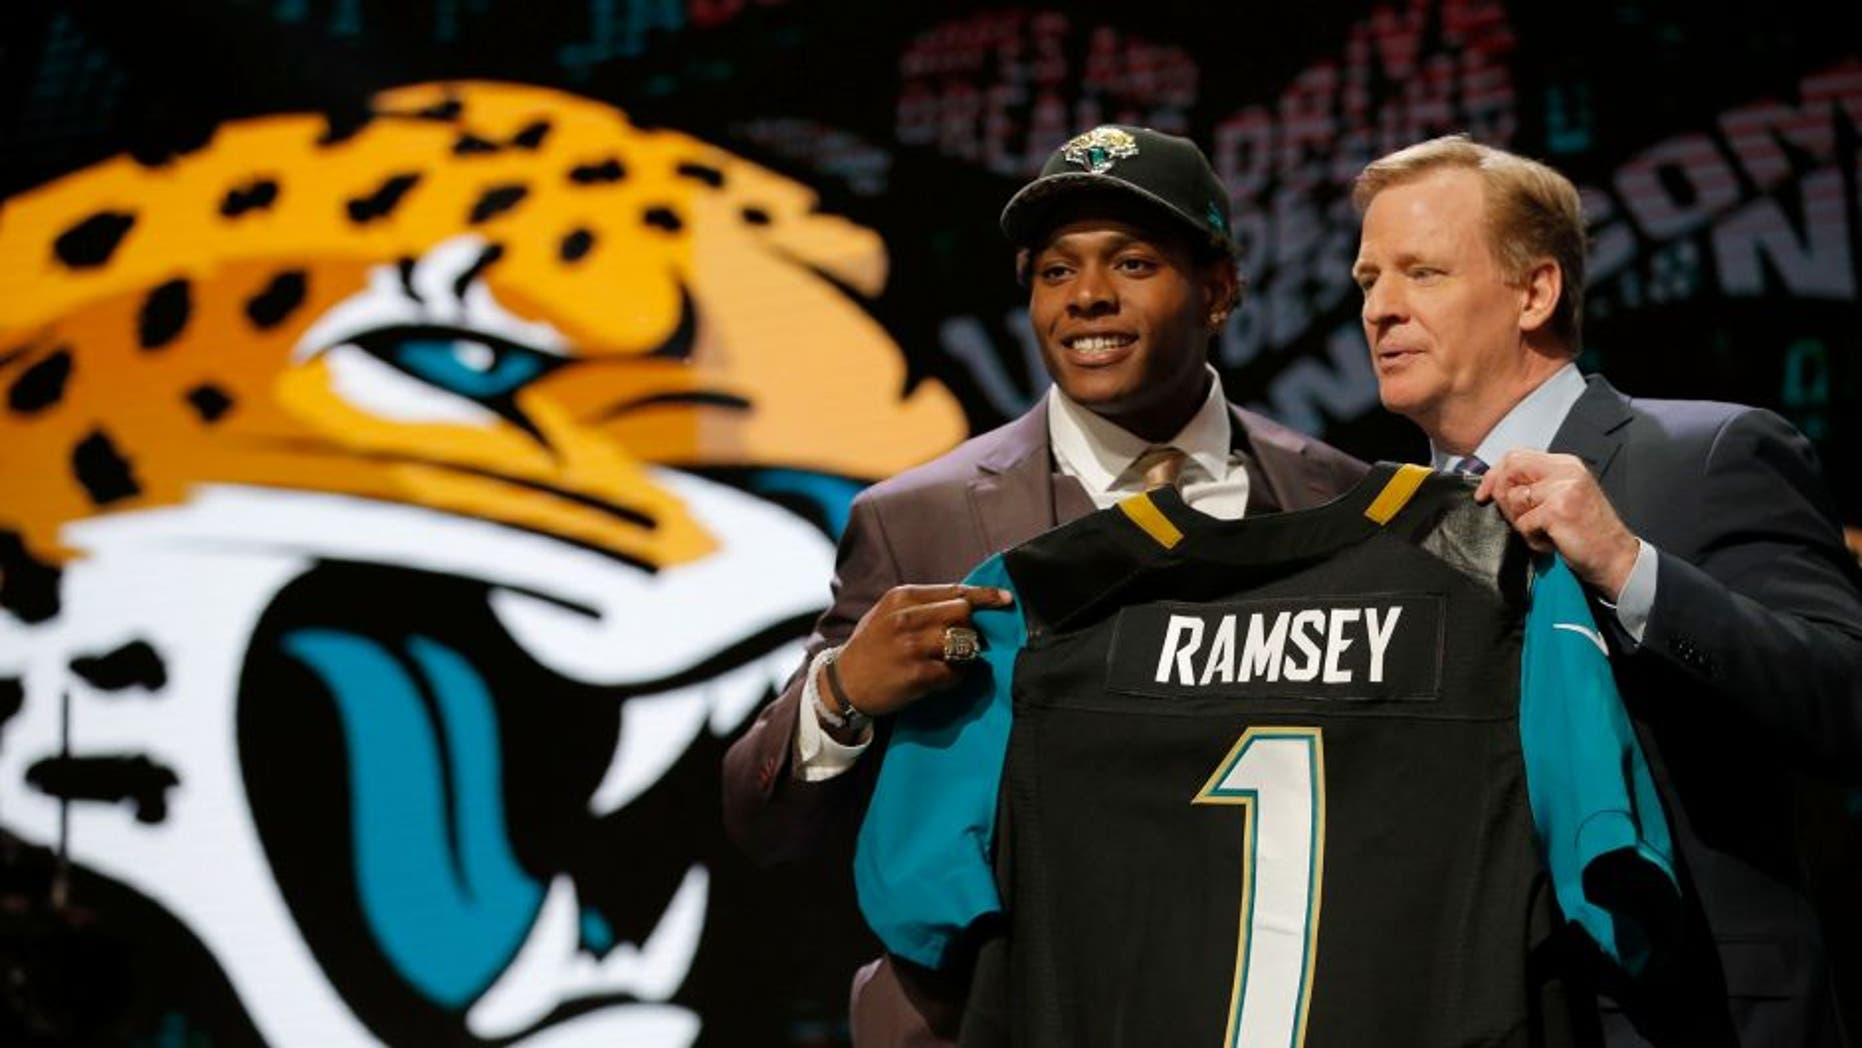 CHICAGO, IL - APRIL 28: (L-R) Jalen Ramsey of the Florida State Seminoles holds up a jersey with NFL Commissioner Roger Goodell after being picked #5 overall by the Jacksonville Jaguarsduring the first round of the 2016 NFL Draft at the Auditorium Theatre of Roosevelt University on April 28, 2016 in Chicago, Illinois. (Photo by Jon Durr/Getty Images)